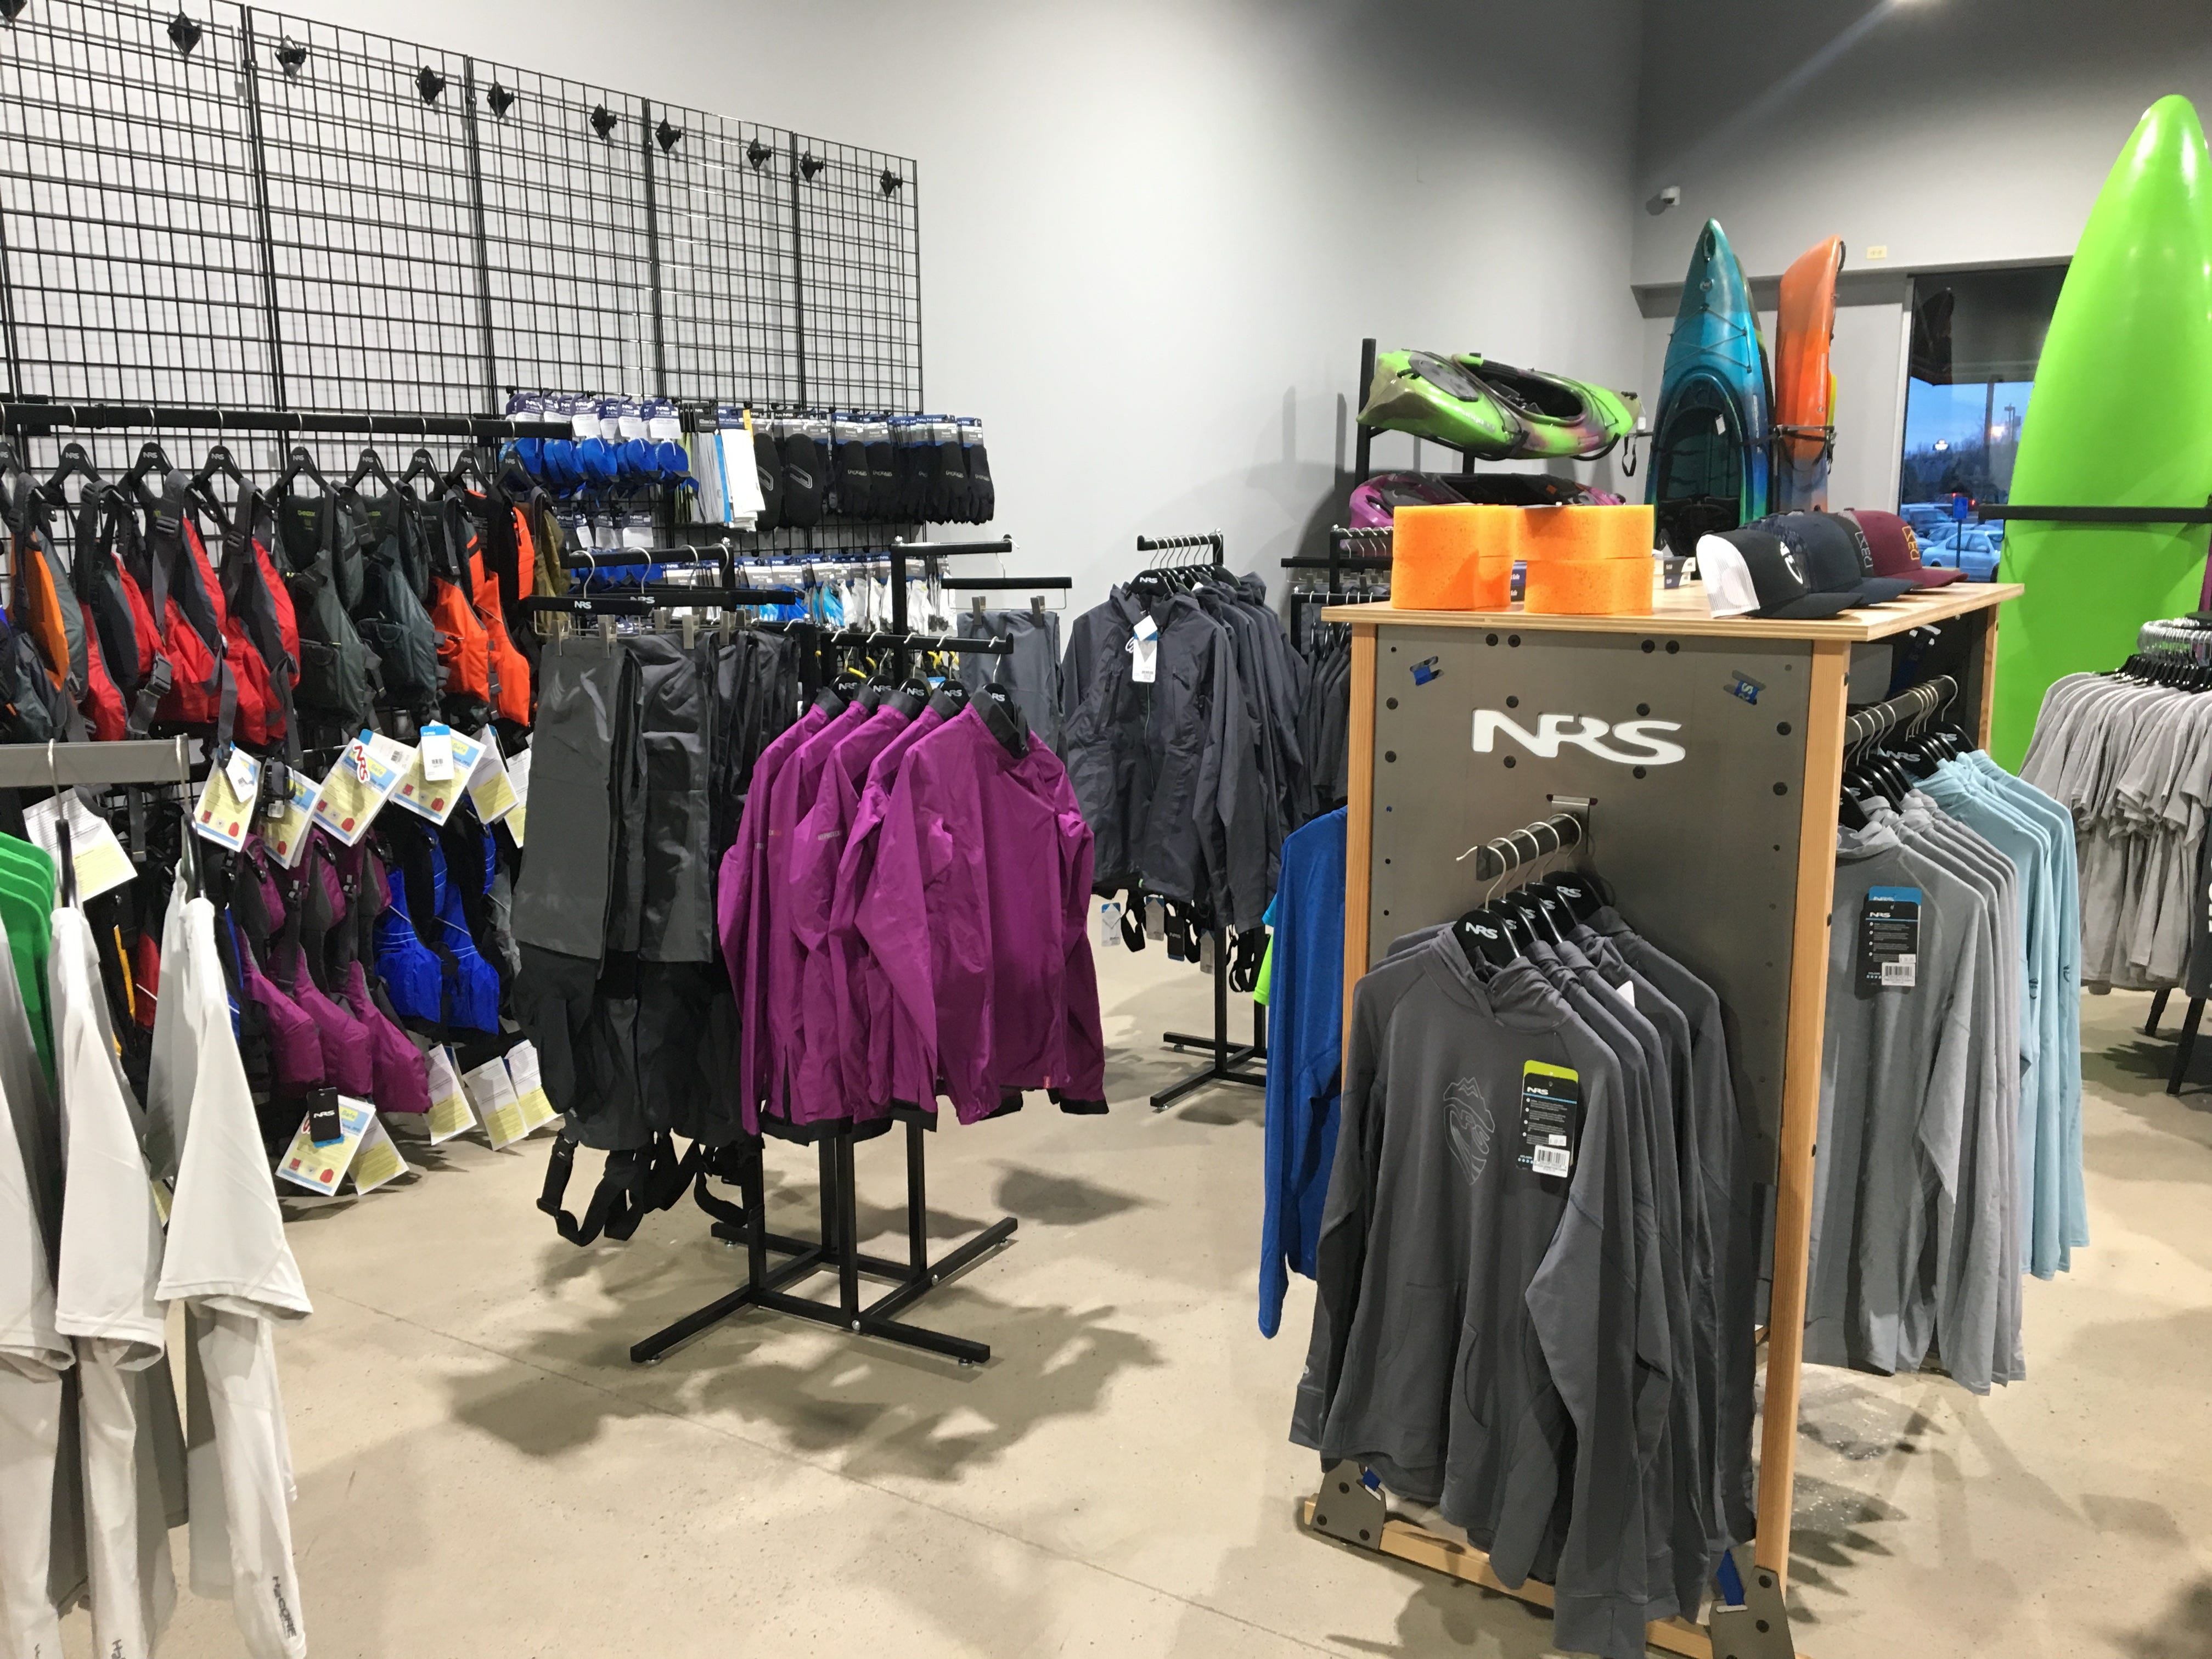 Hook 1 outfitters in Murfreesboro has NRS kayak apparel, and more will be added in the coming months.